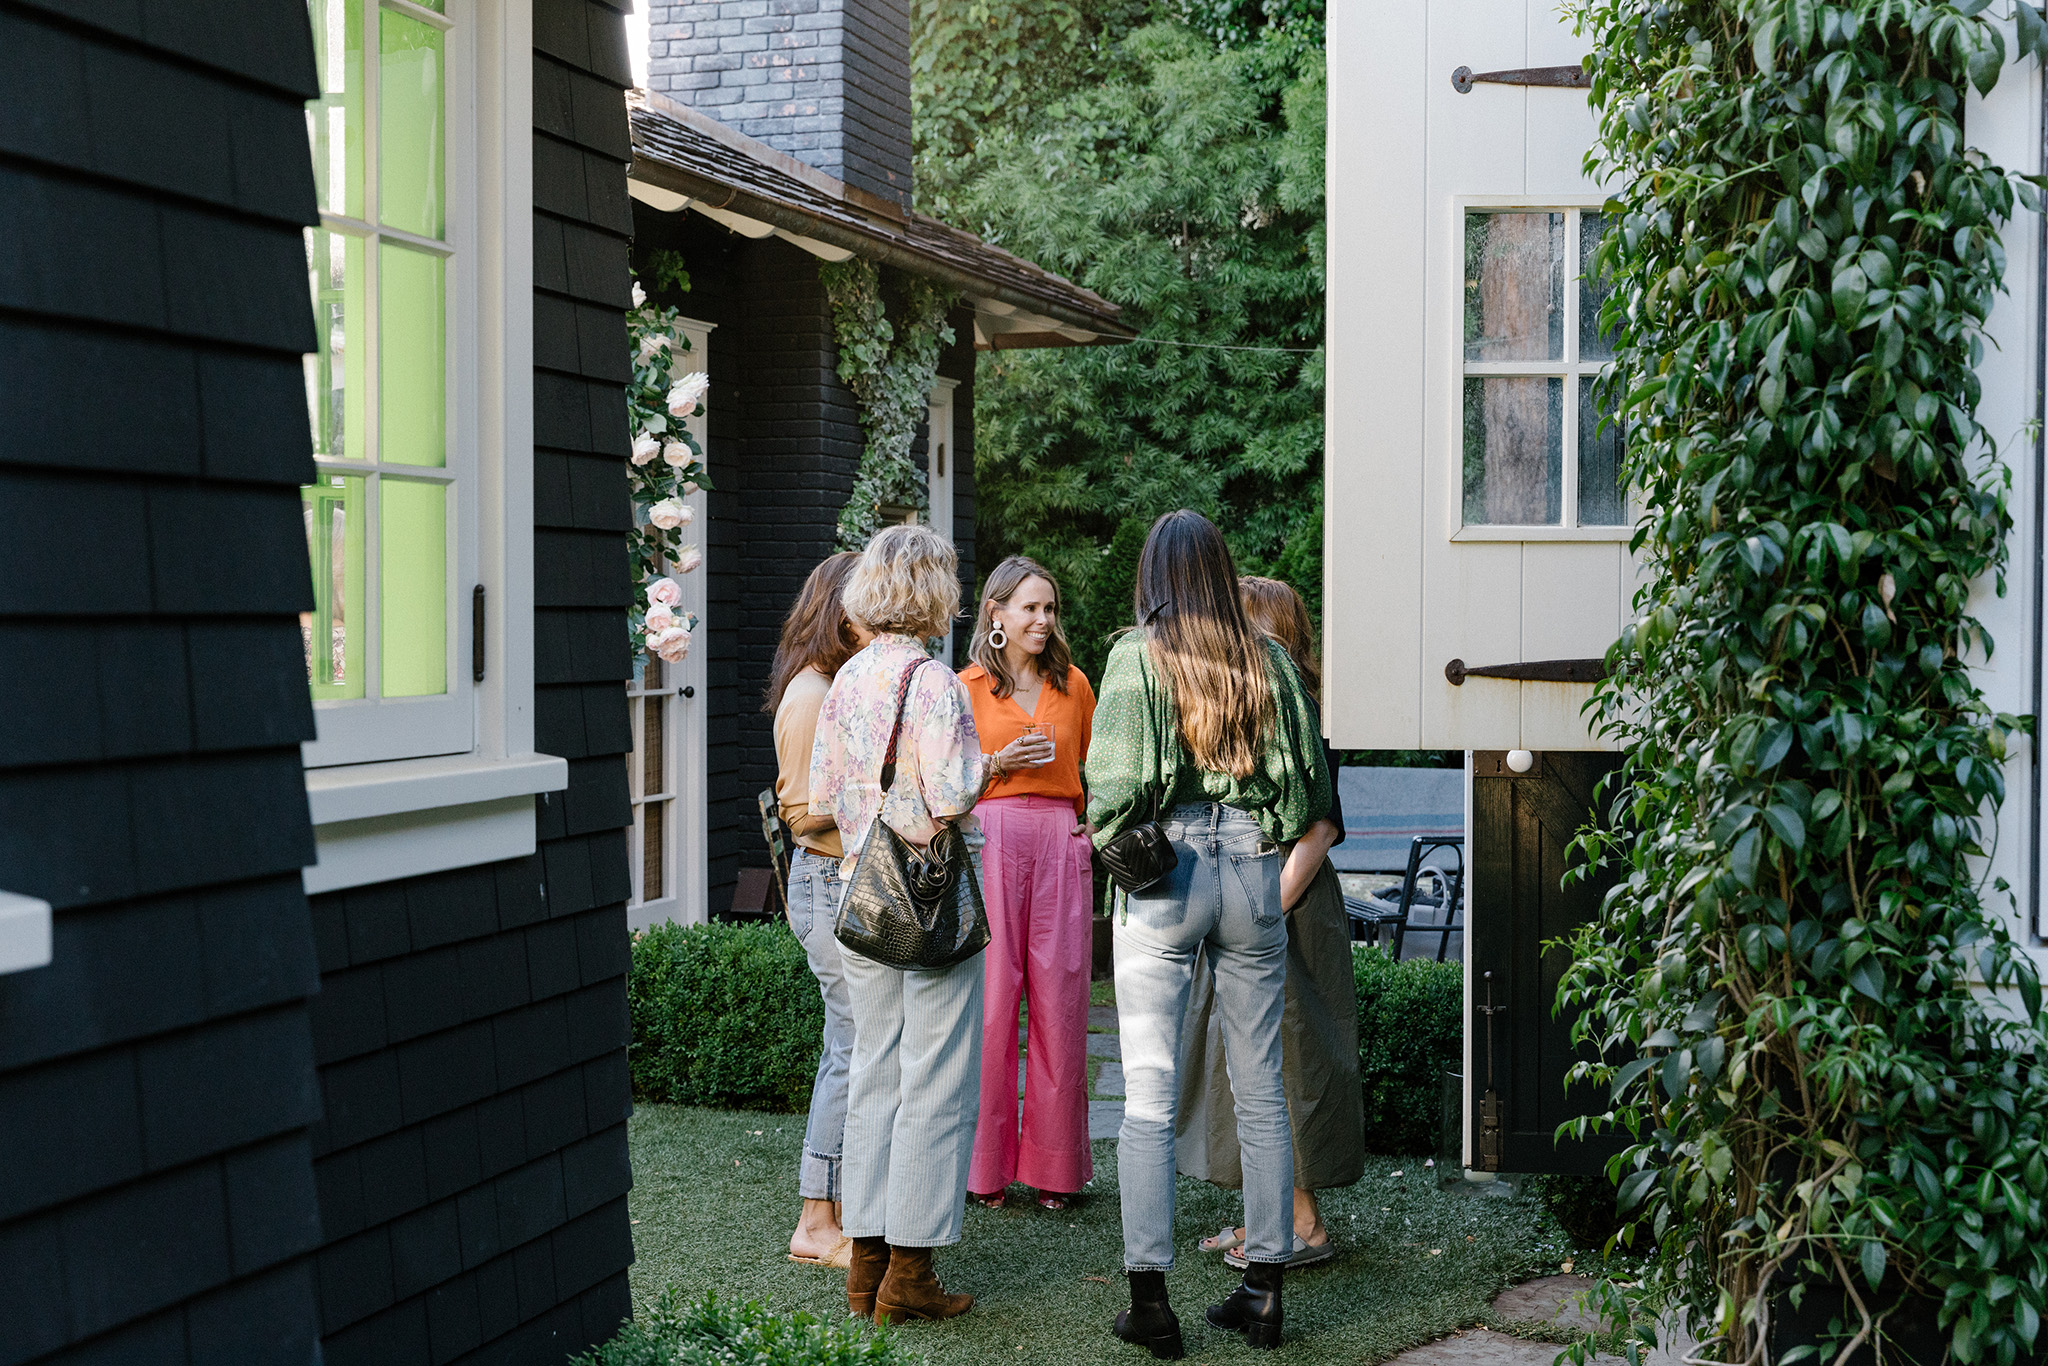 Stella and Dot creative director Blythe Harris threw a cocktail party for SF-based founders, designers, and stylists at her home in Mill Valley, CA, June 4, 2019. Jason Henry for WWD